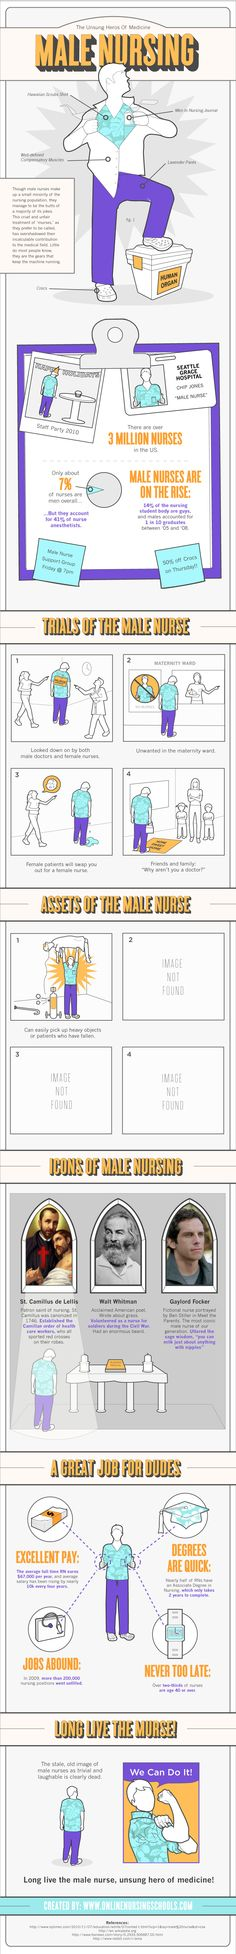 Nurse ABC's: Rise of the Male Nurses (Everything that makes Nursing interesting, fun, and over the top as a profession. This is how you would want to see nursing in a whole lot of perspective)